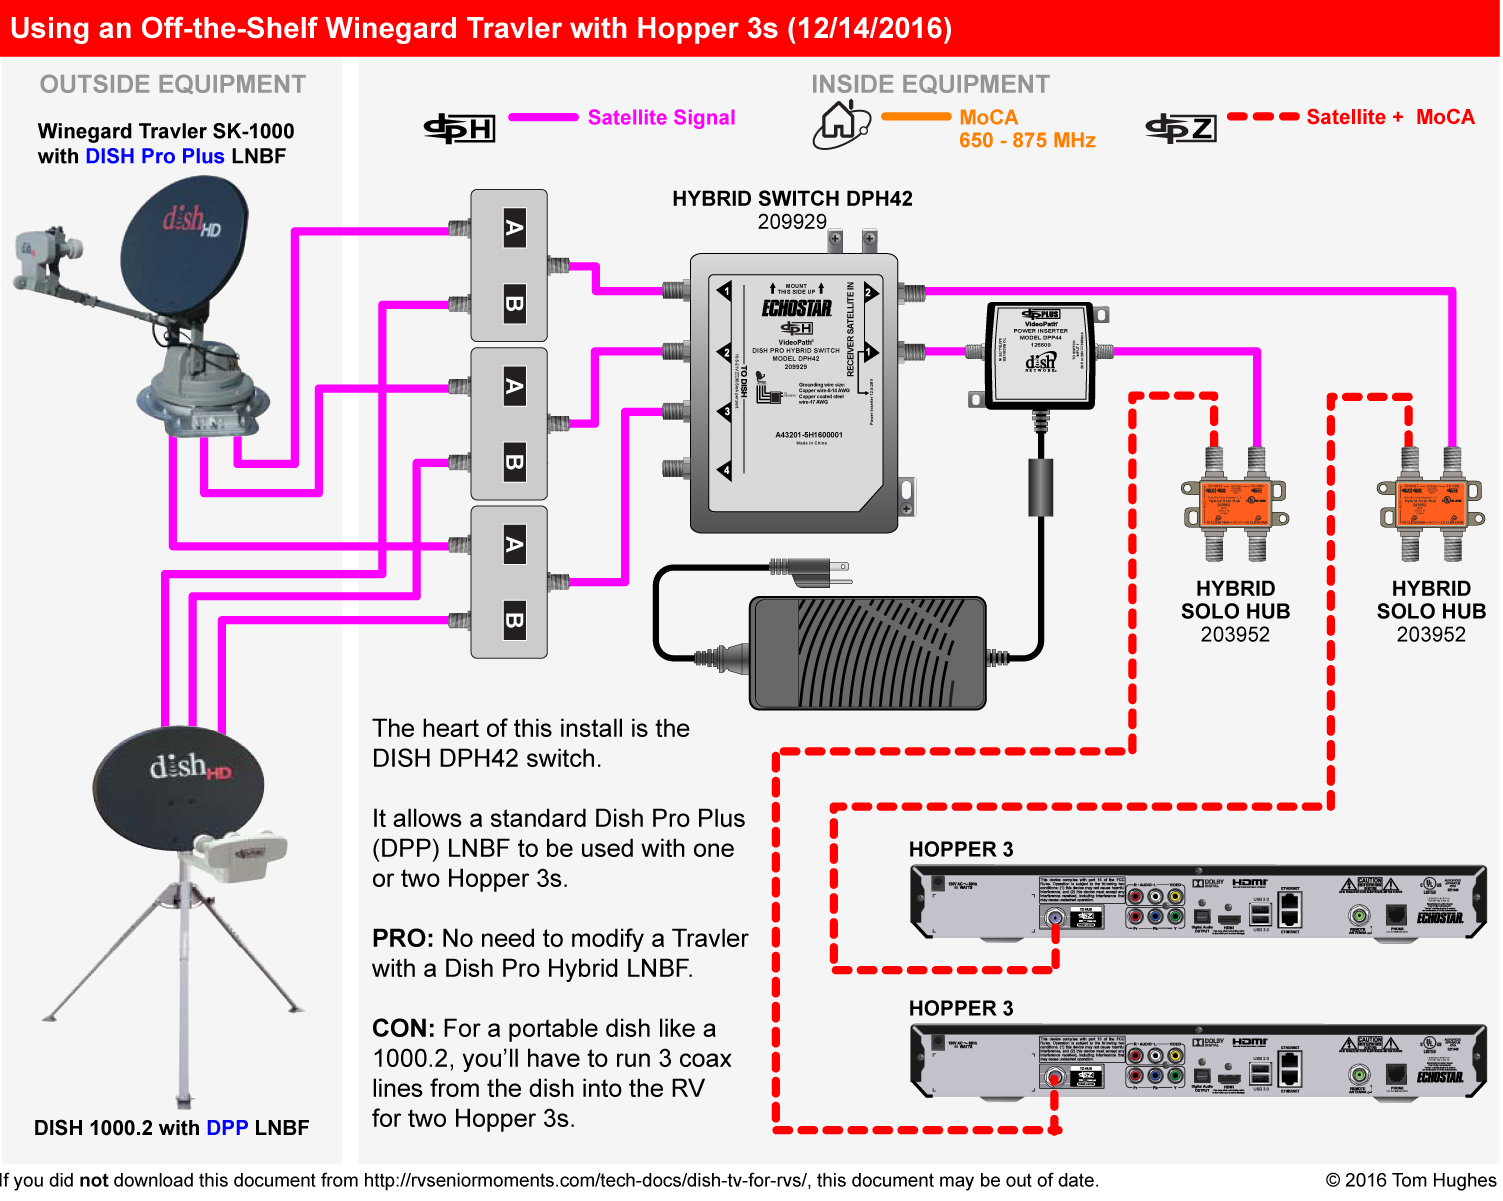 dph42_winegard travler_two_hopper3s dish tv for rvs rvseniormoments dish pro plus wiring diagram at panicattacktreatment.co